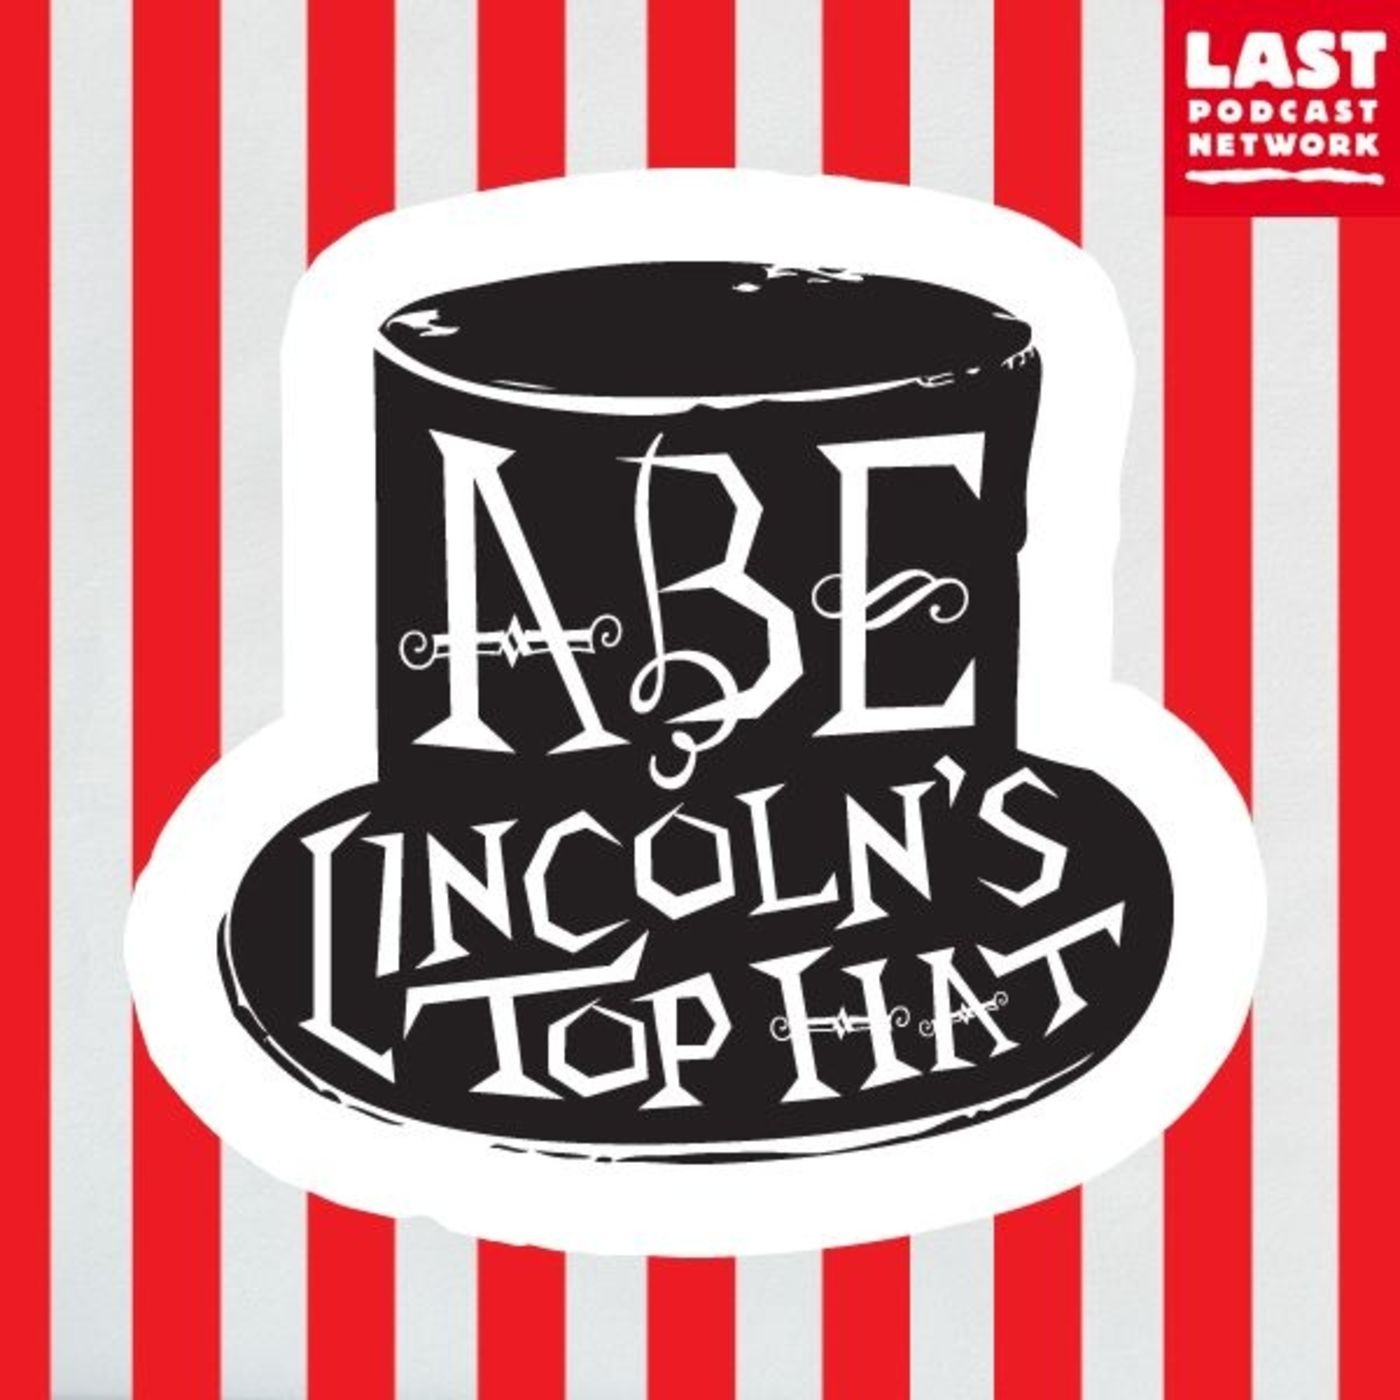 Abe Lincoln s Top Hat by The Last Podcast Network on Apple Podcasts eb562a186271